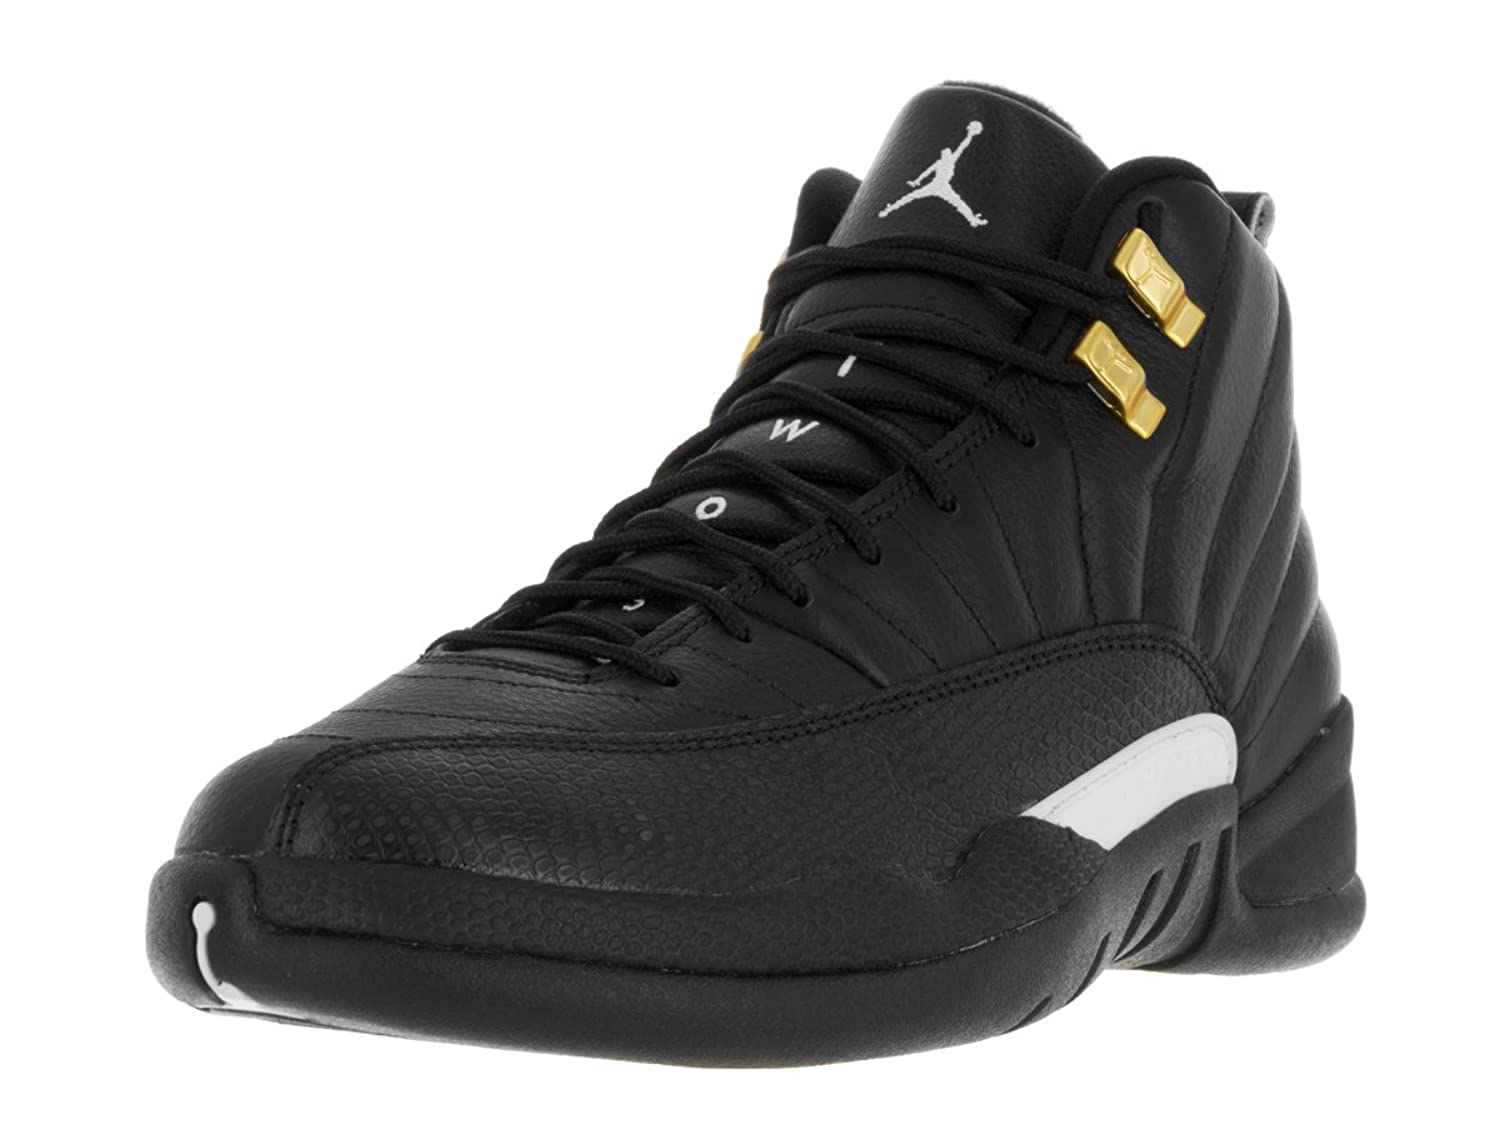 Nike Jordan Men\u0027s Air Jordan 12 Retro Basketball Shoe